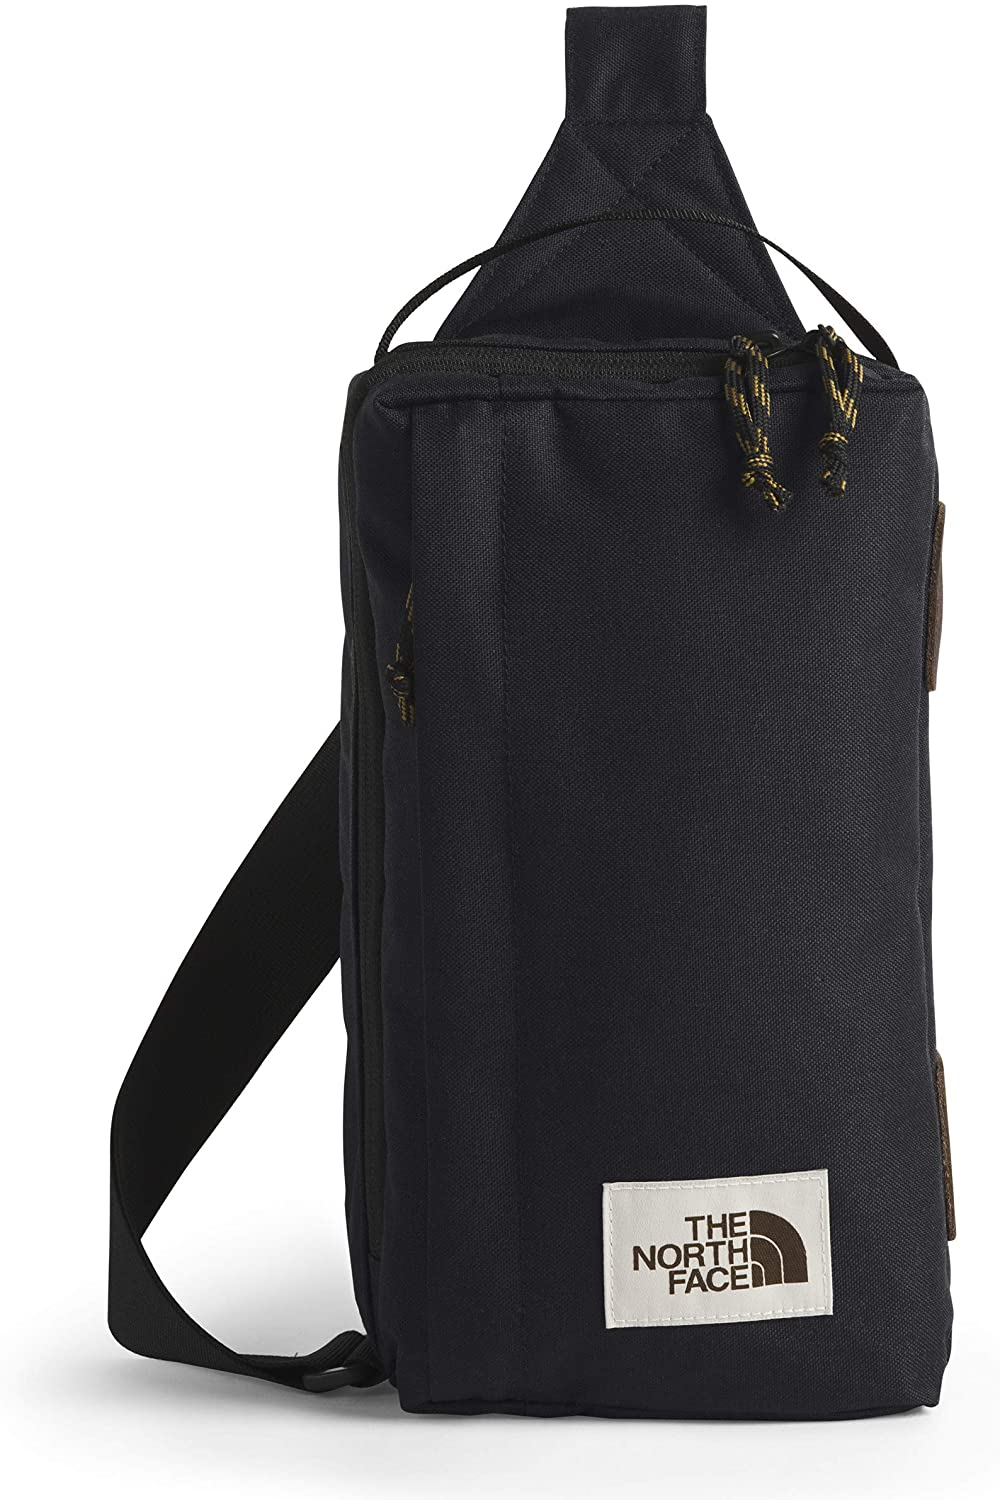 The North Face Field Bag, TNF Black Heather, OS